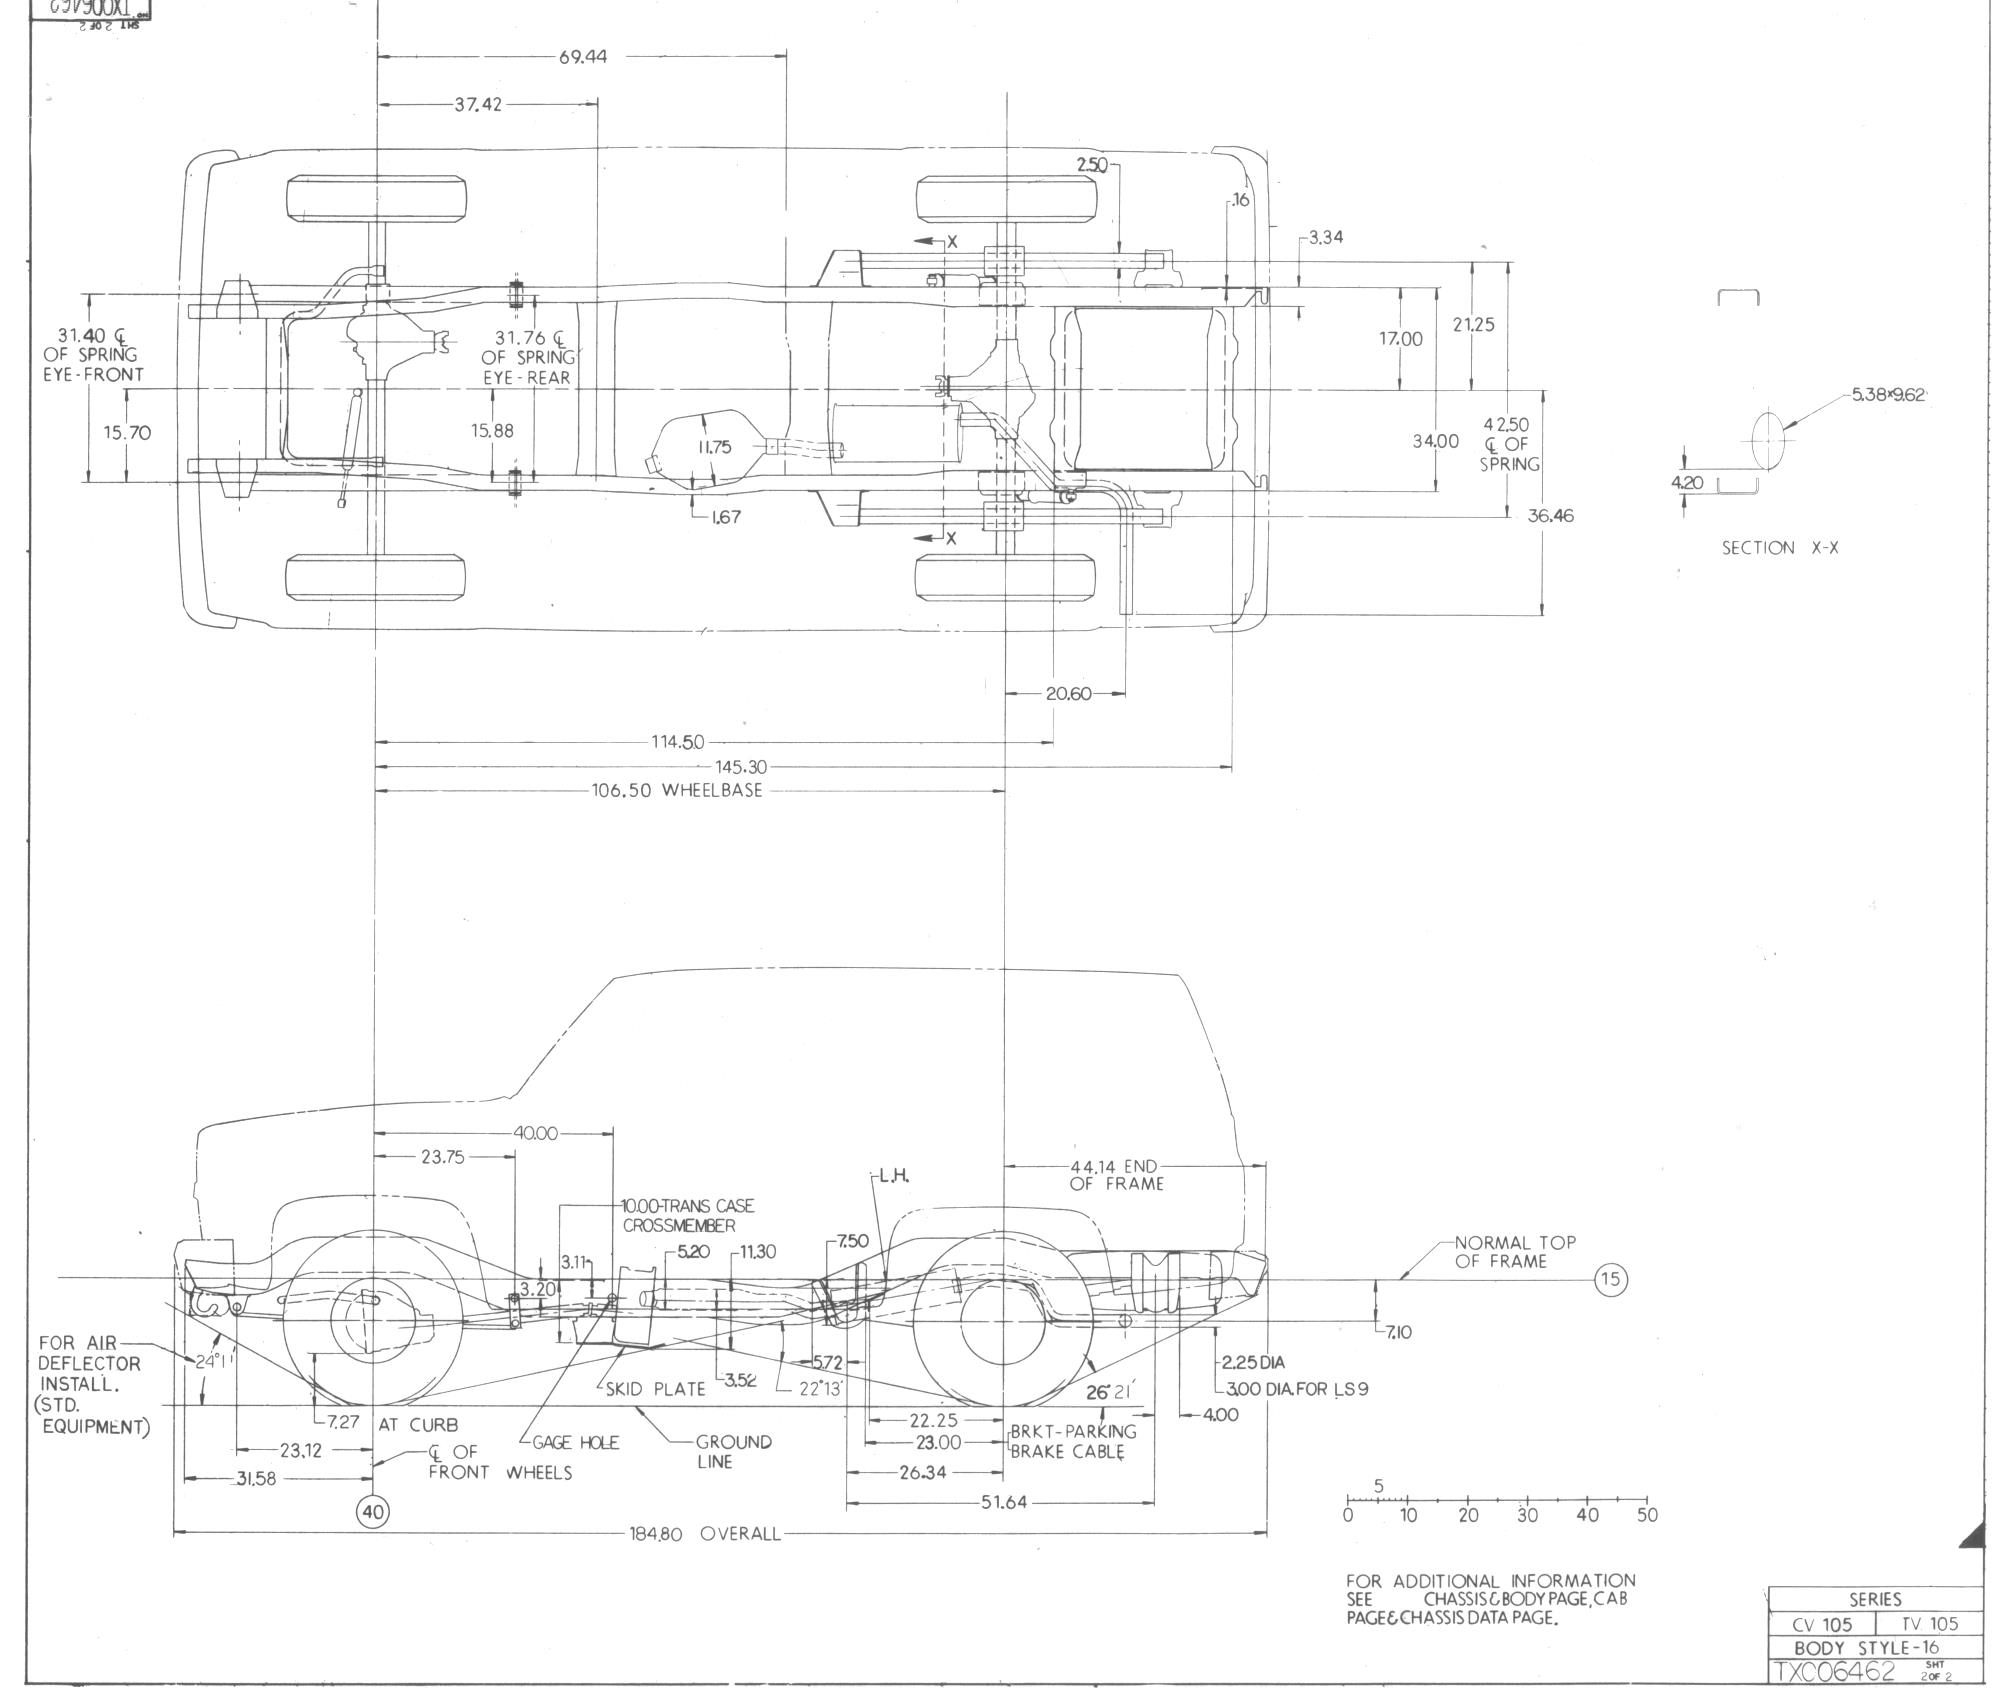 Watch additionally Watch likewise Where Do These Go Part Ii Engine Wiring Harnesses 303033 additionally Watch also 100396 Wiring Fuel Pump. on 1996 c1500 wiring diagram